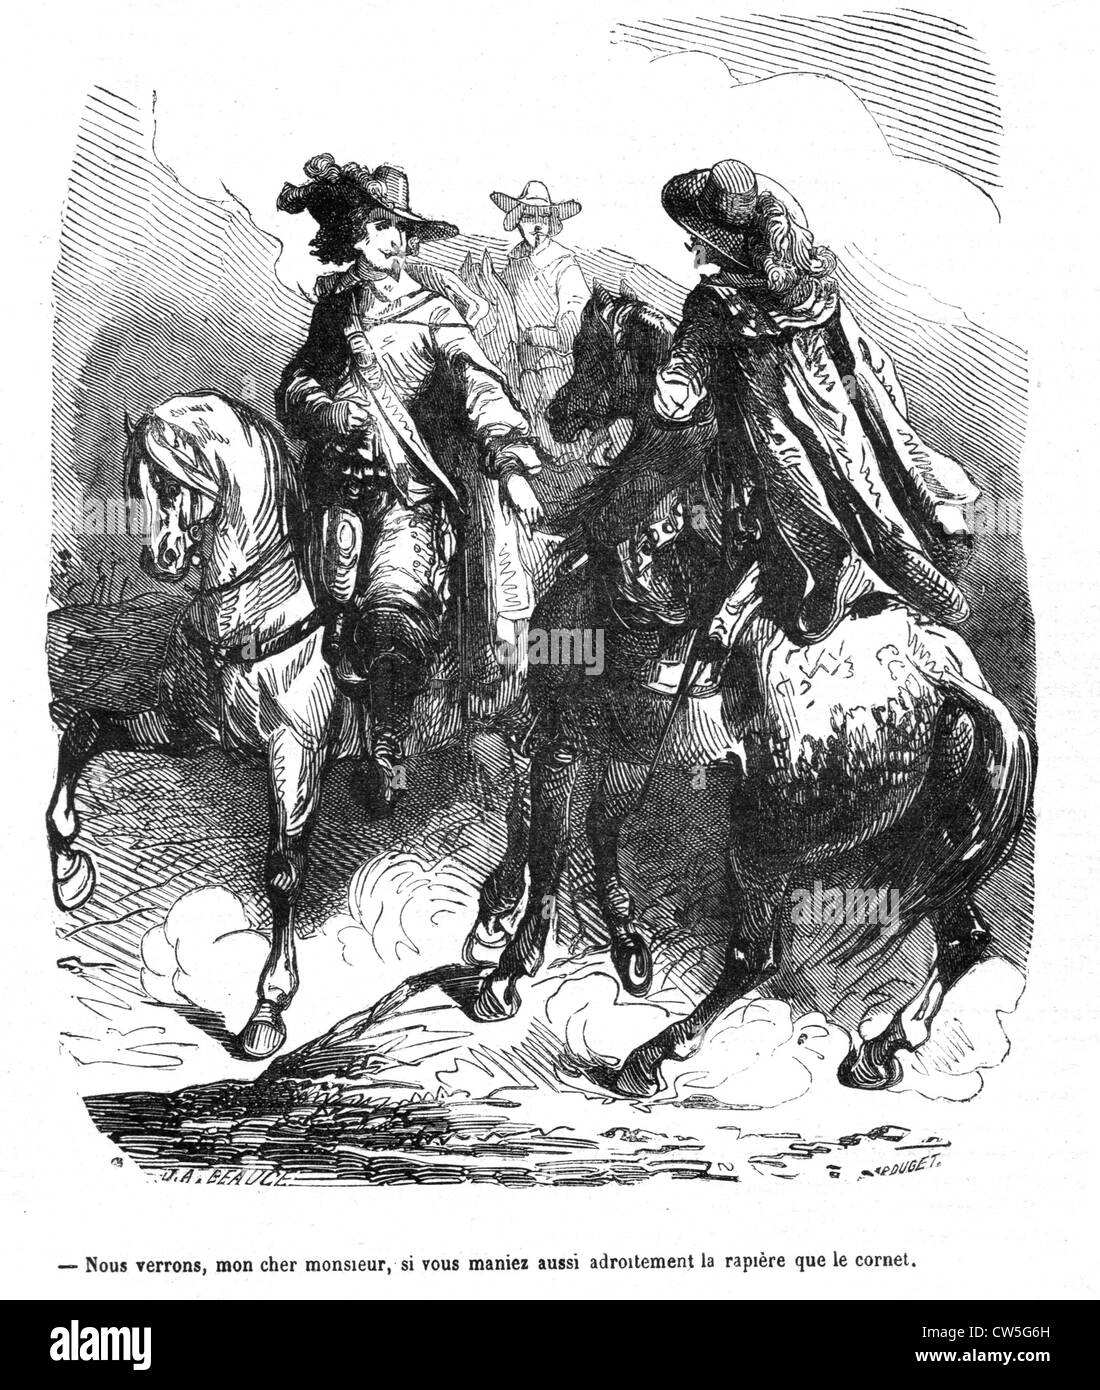 symbolism and imagery in the three musketeers essay A historical view of the three musketeers essay - in the novel the three musketeers by alexandre dumas, king louis xiii and cardinal richelieu are in authority.